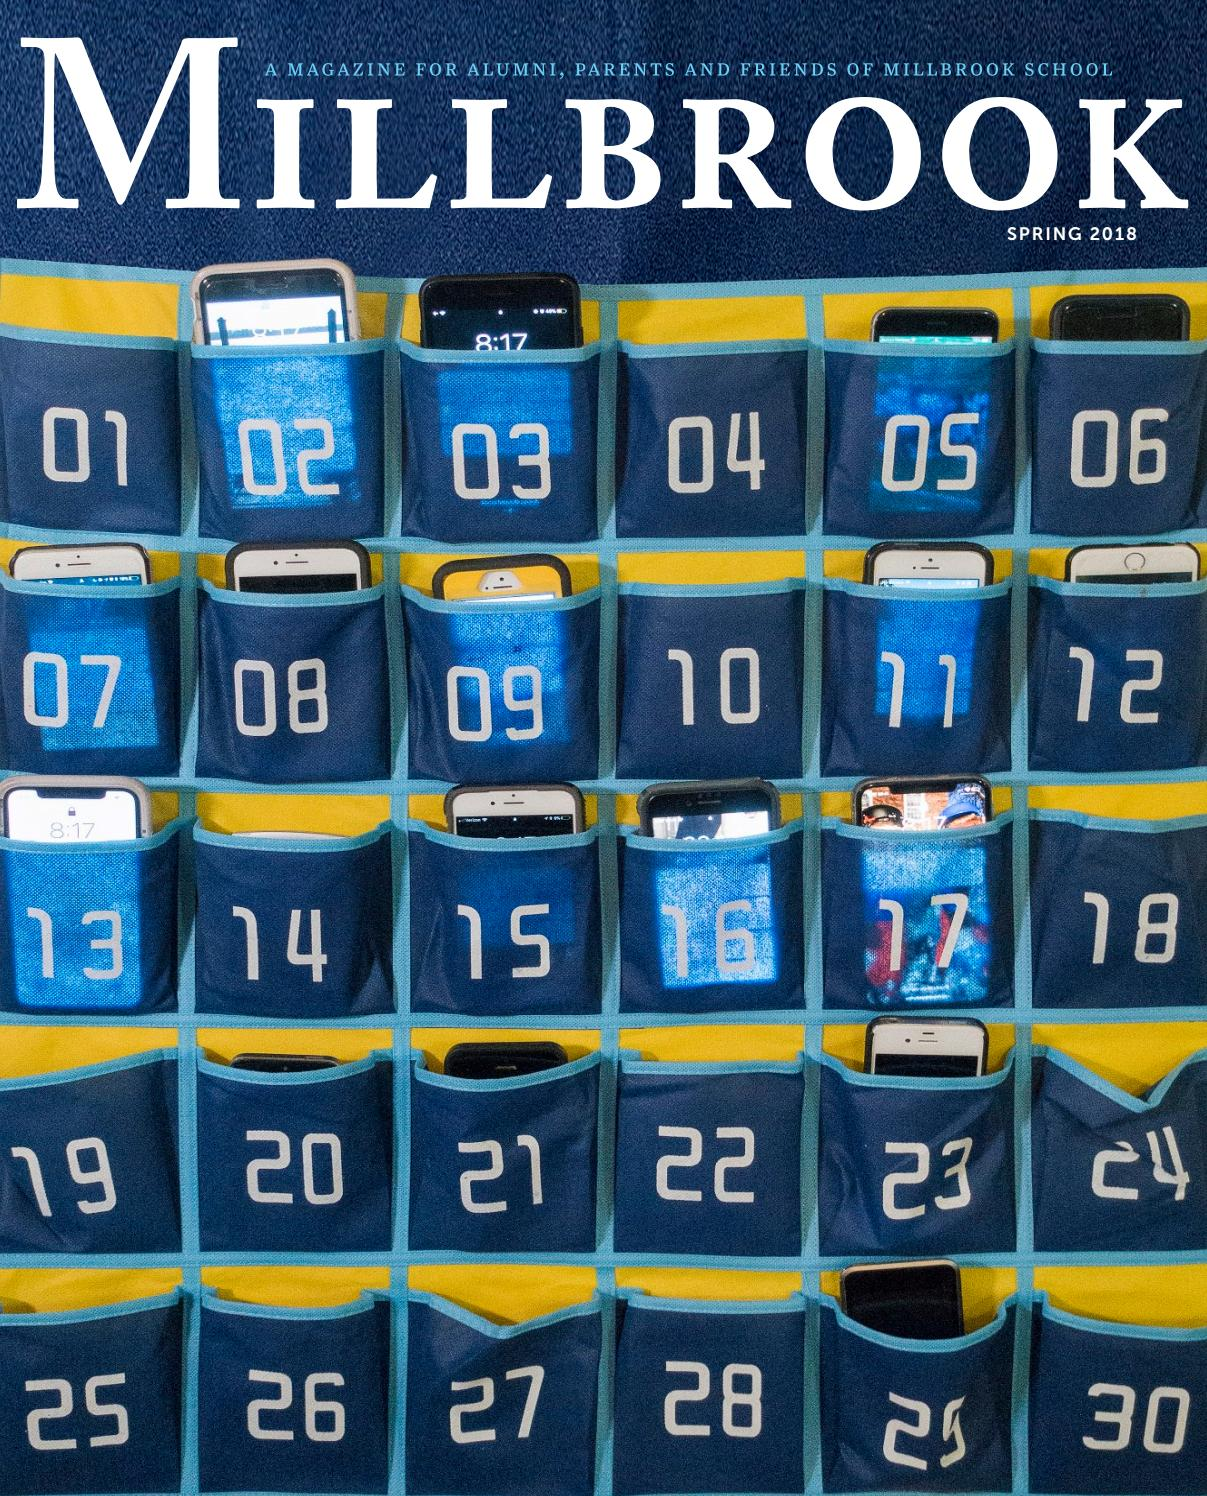 Millbrook, Spring 2018 by Millbrook School - issuu